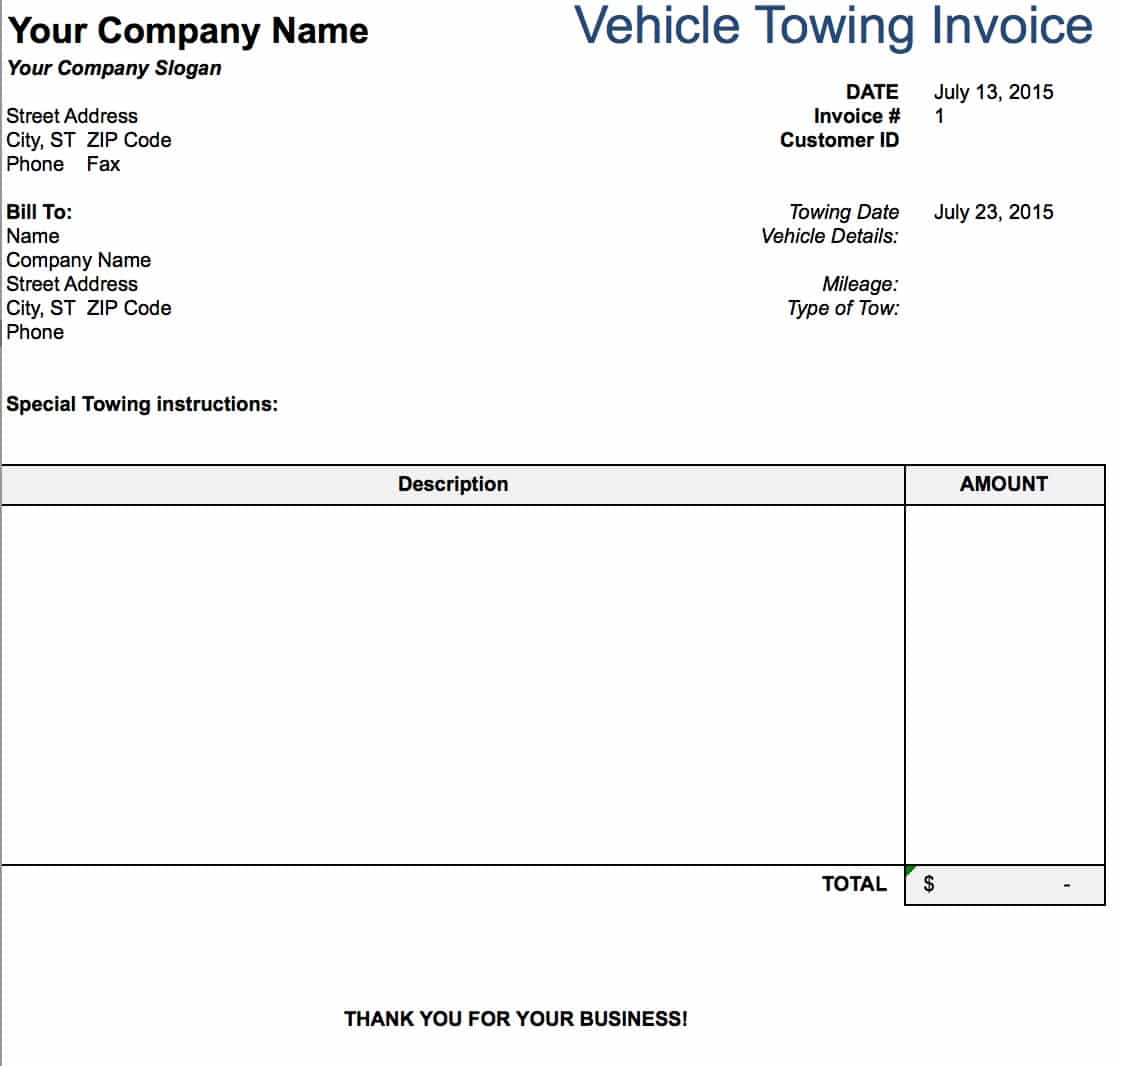 Free Tow Service Invoice Template Excel PDF Word Doc - Creating an invoice template for service business